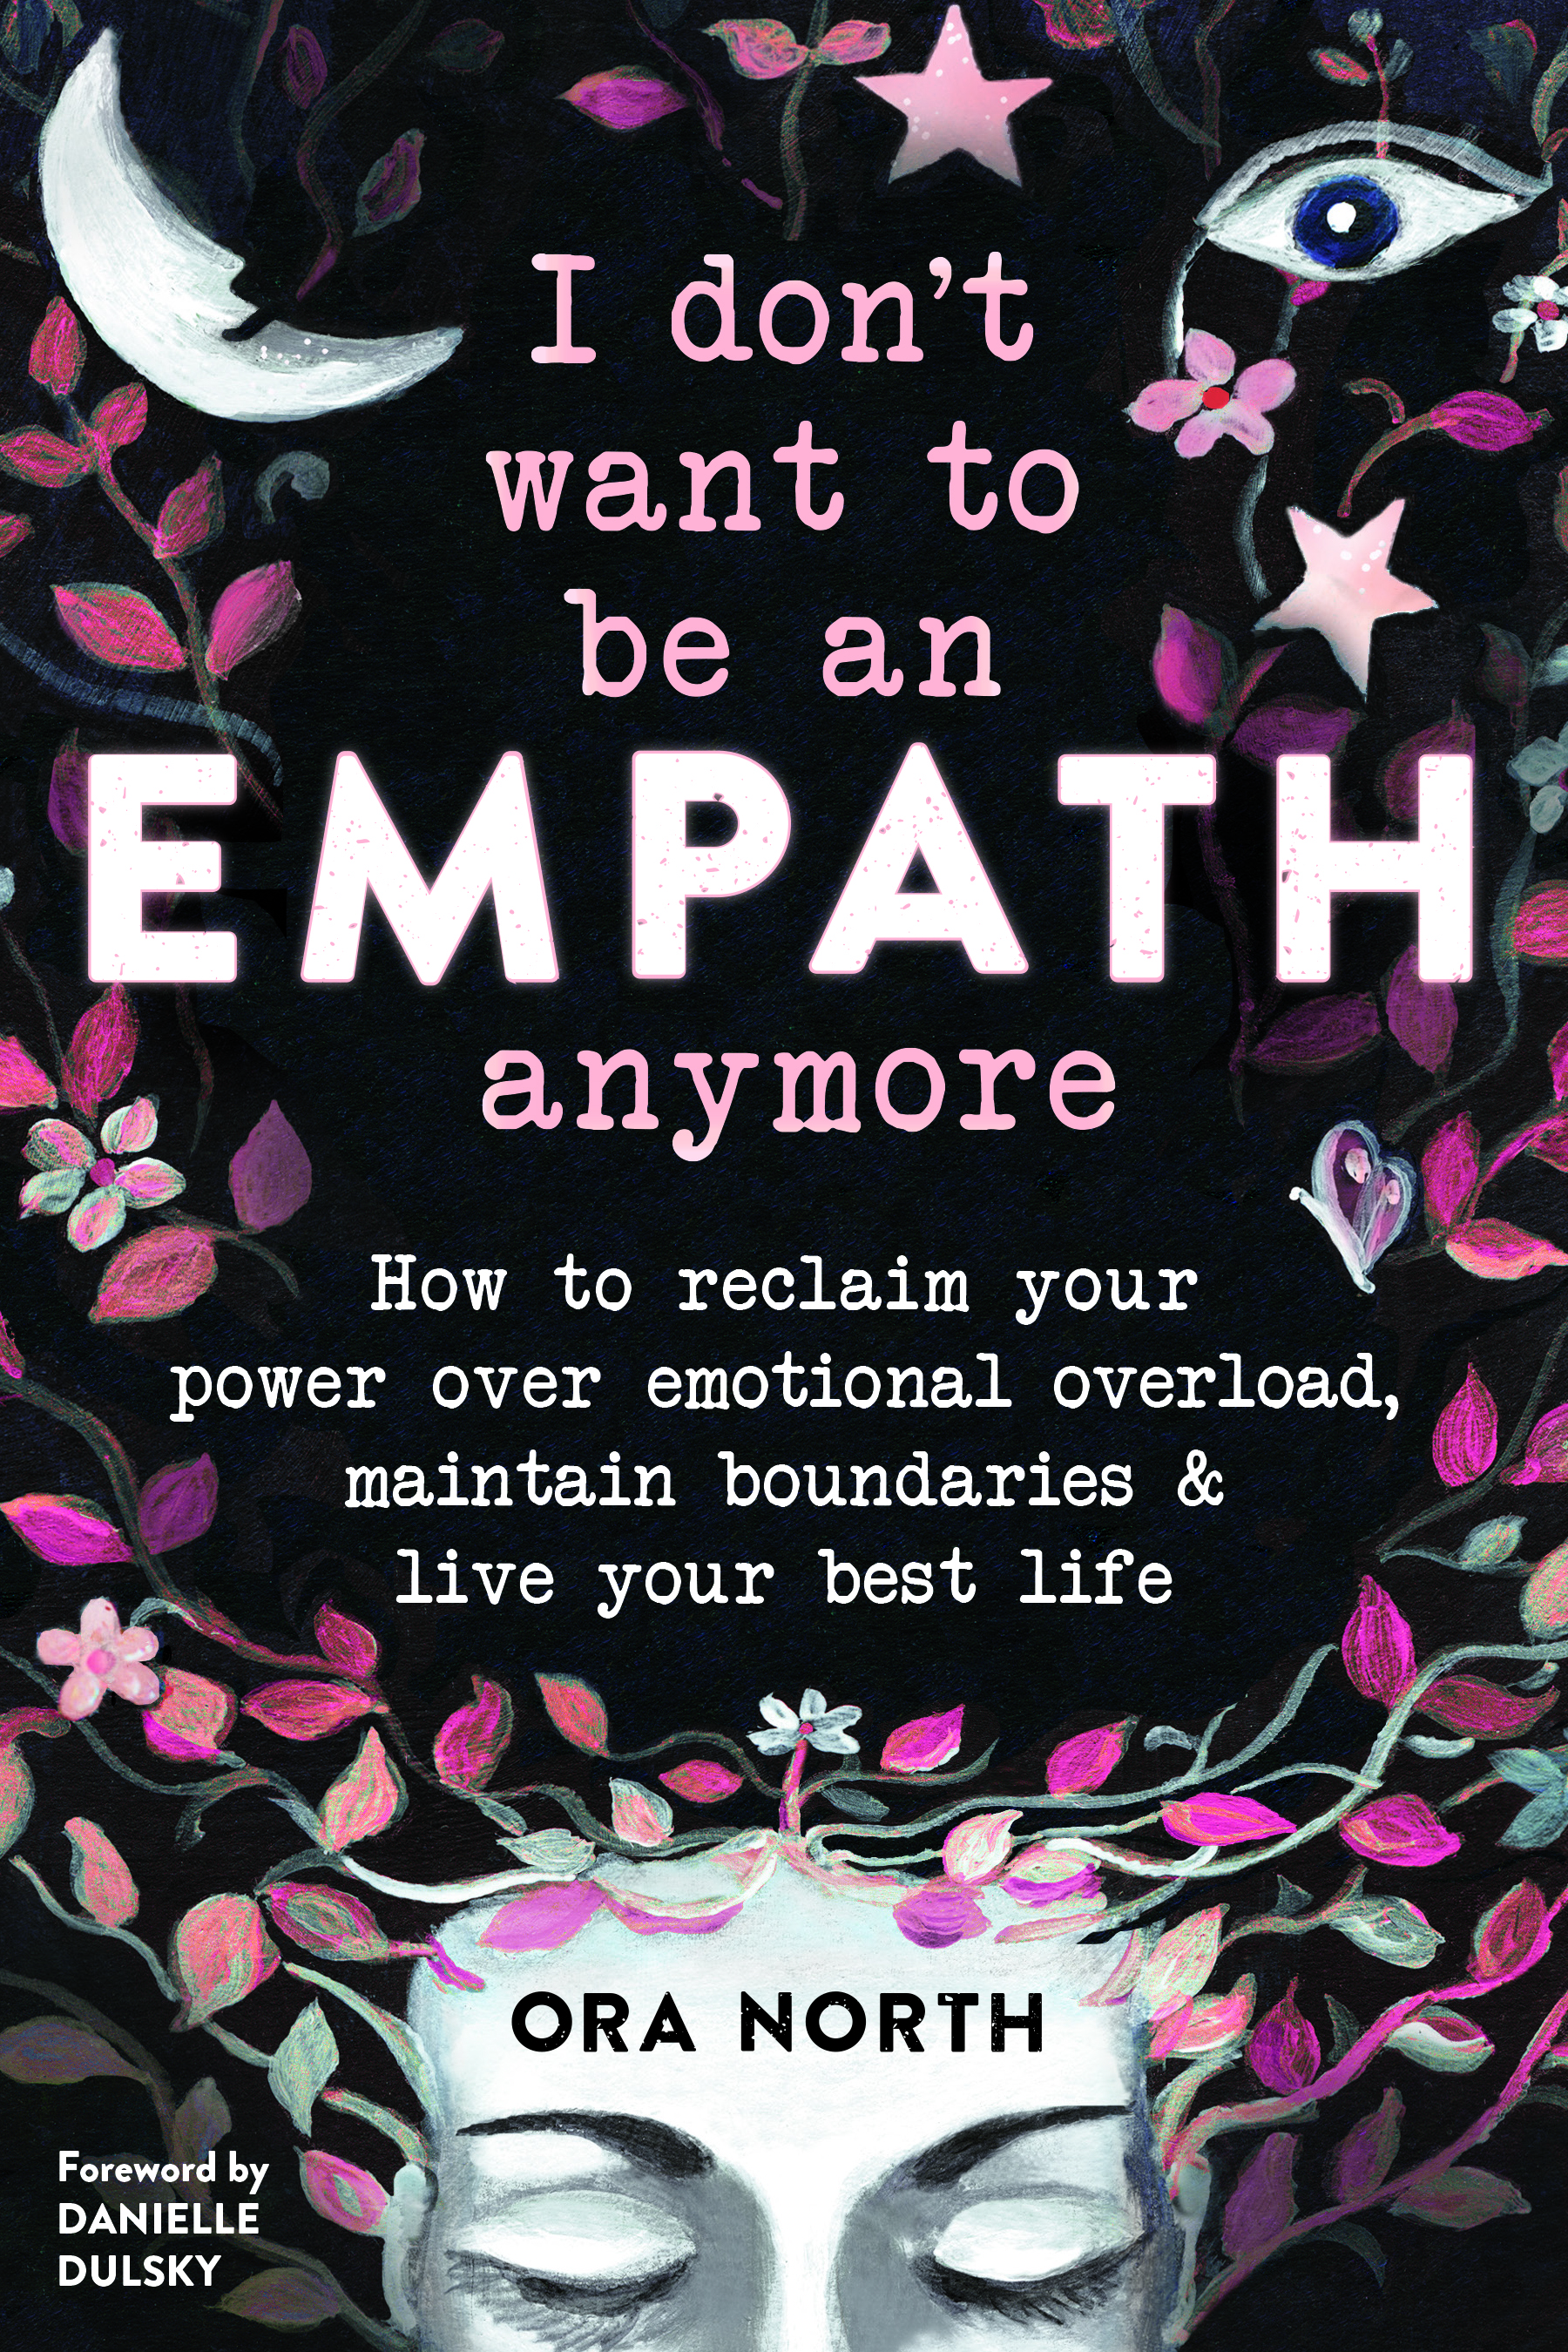 My book I Don't Want to be an Empath Anymore is now available!  - Get your copy at New Harbinger Publications, Amazon, or a bookstore near you!